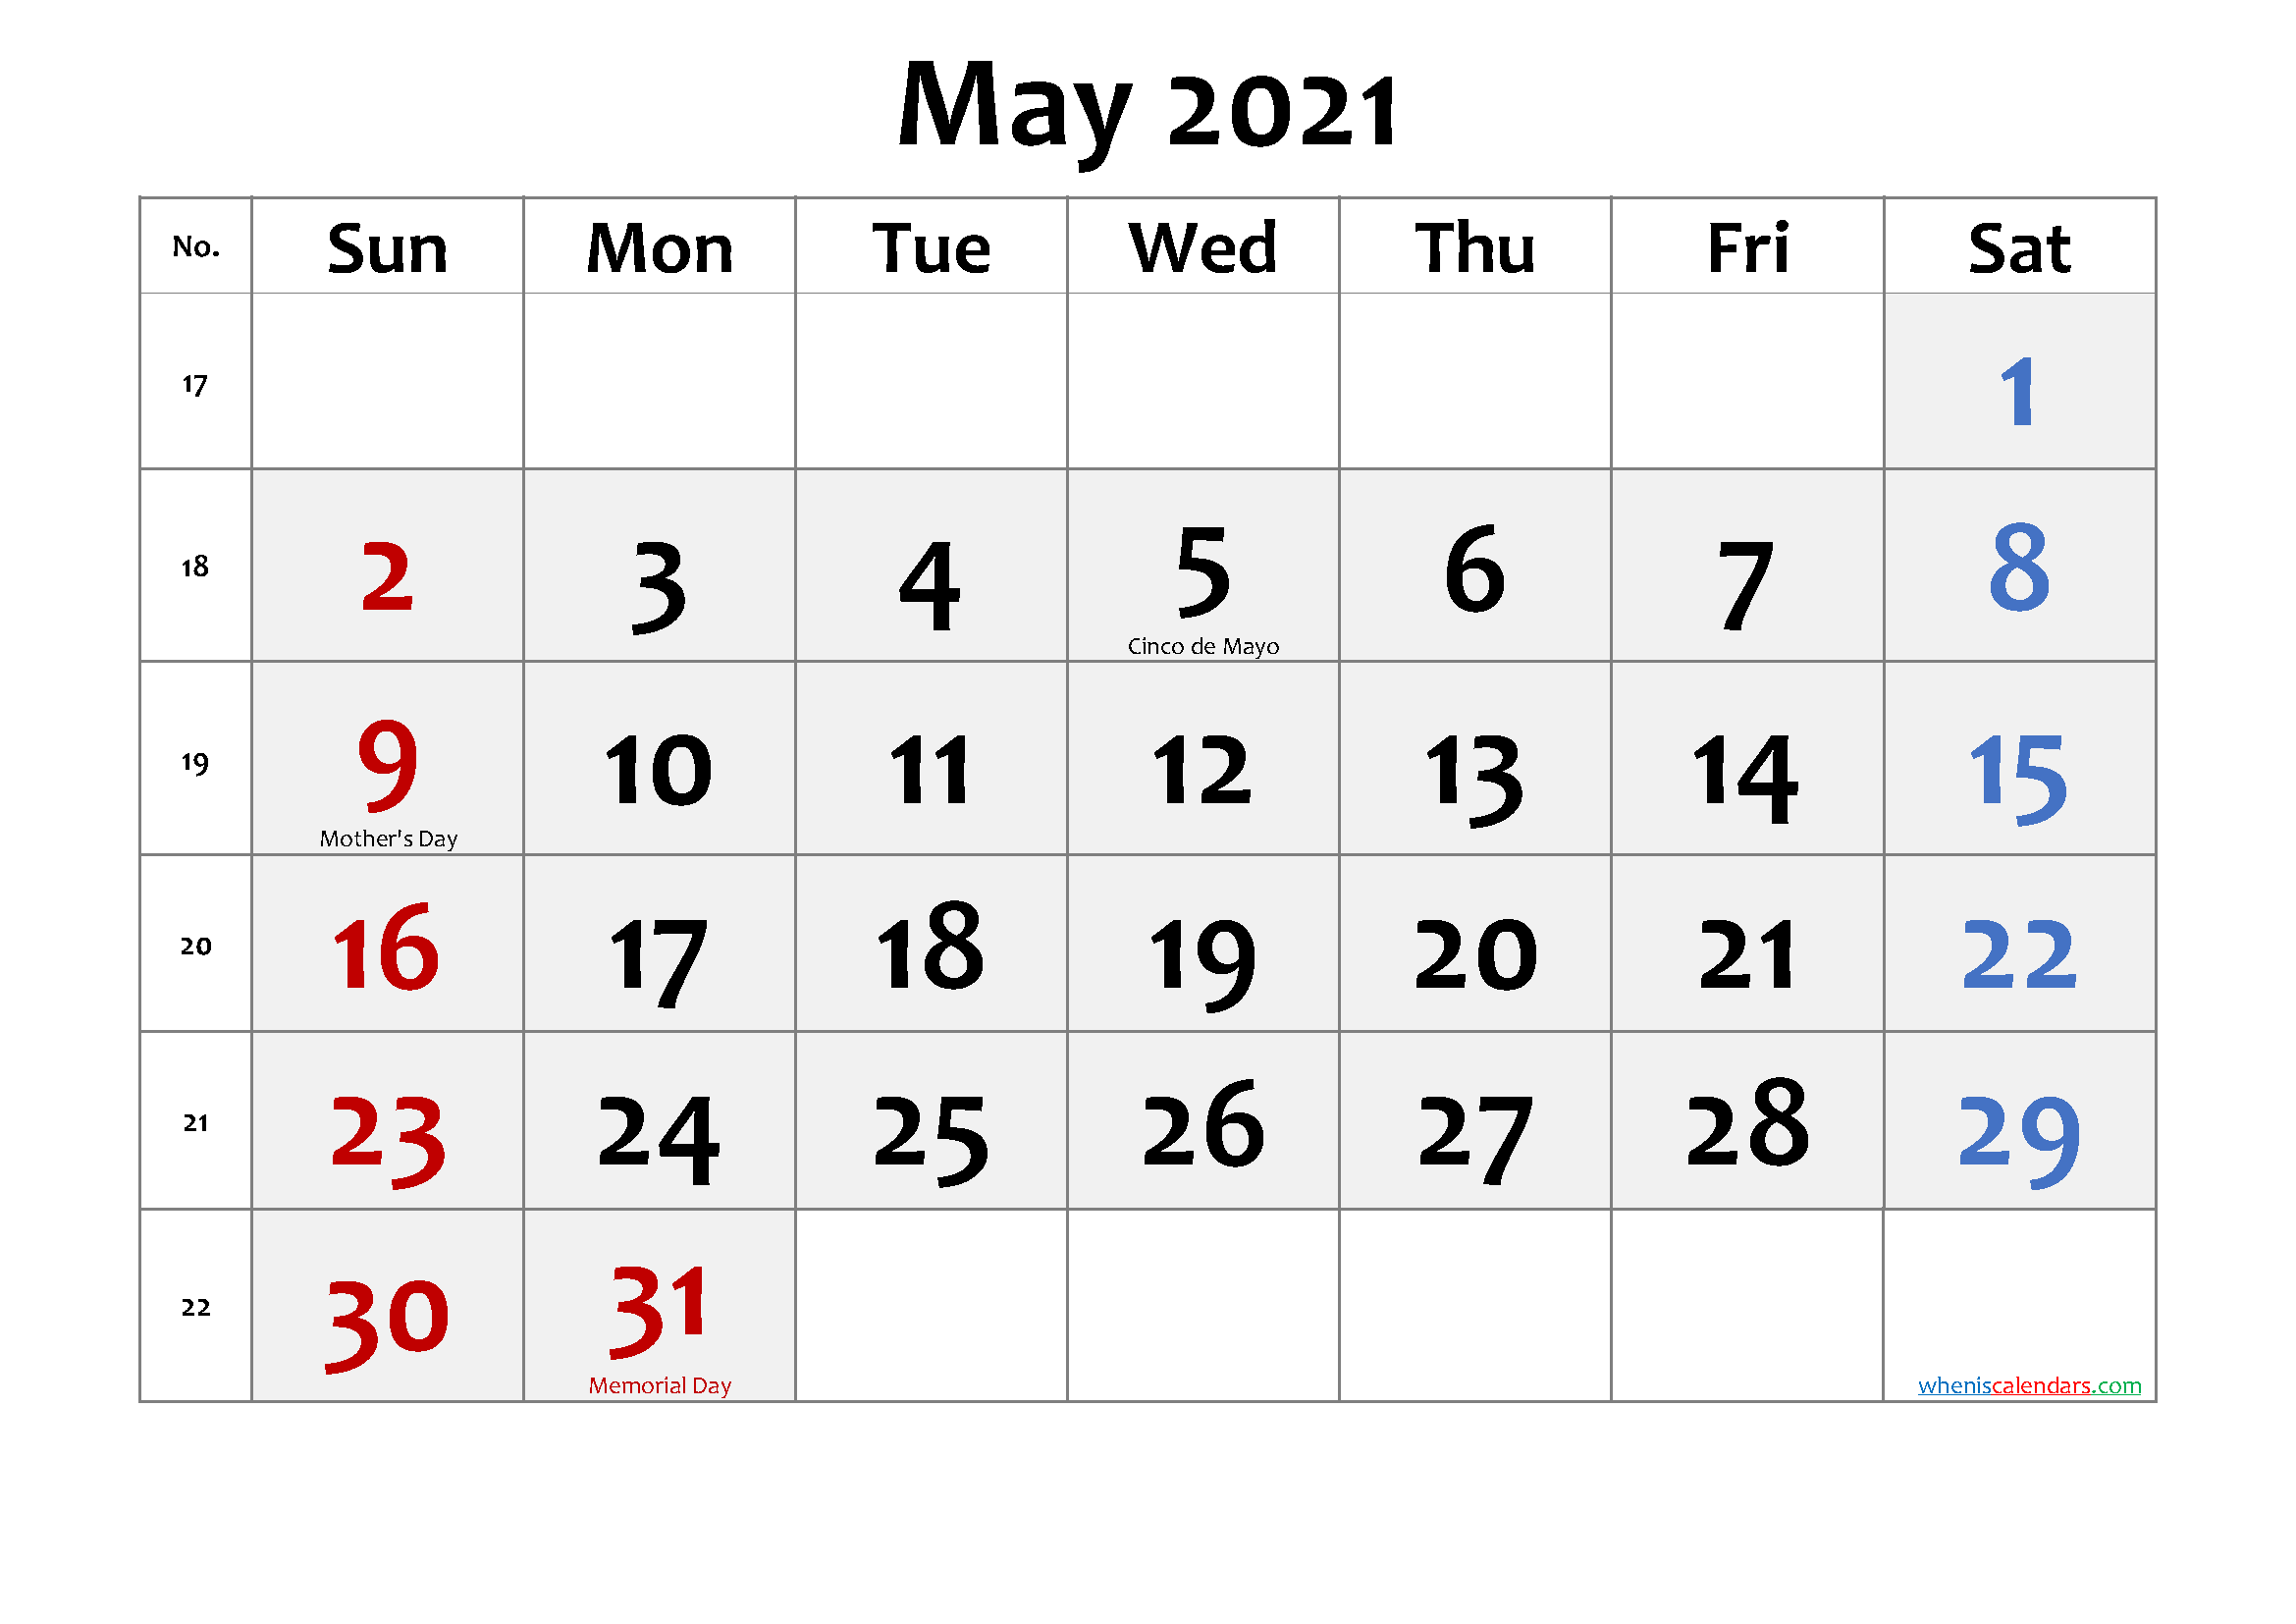 May 2021 Calendar With Holidays Free Printable May 2021 Calendar with Holidays – Free Printable